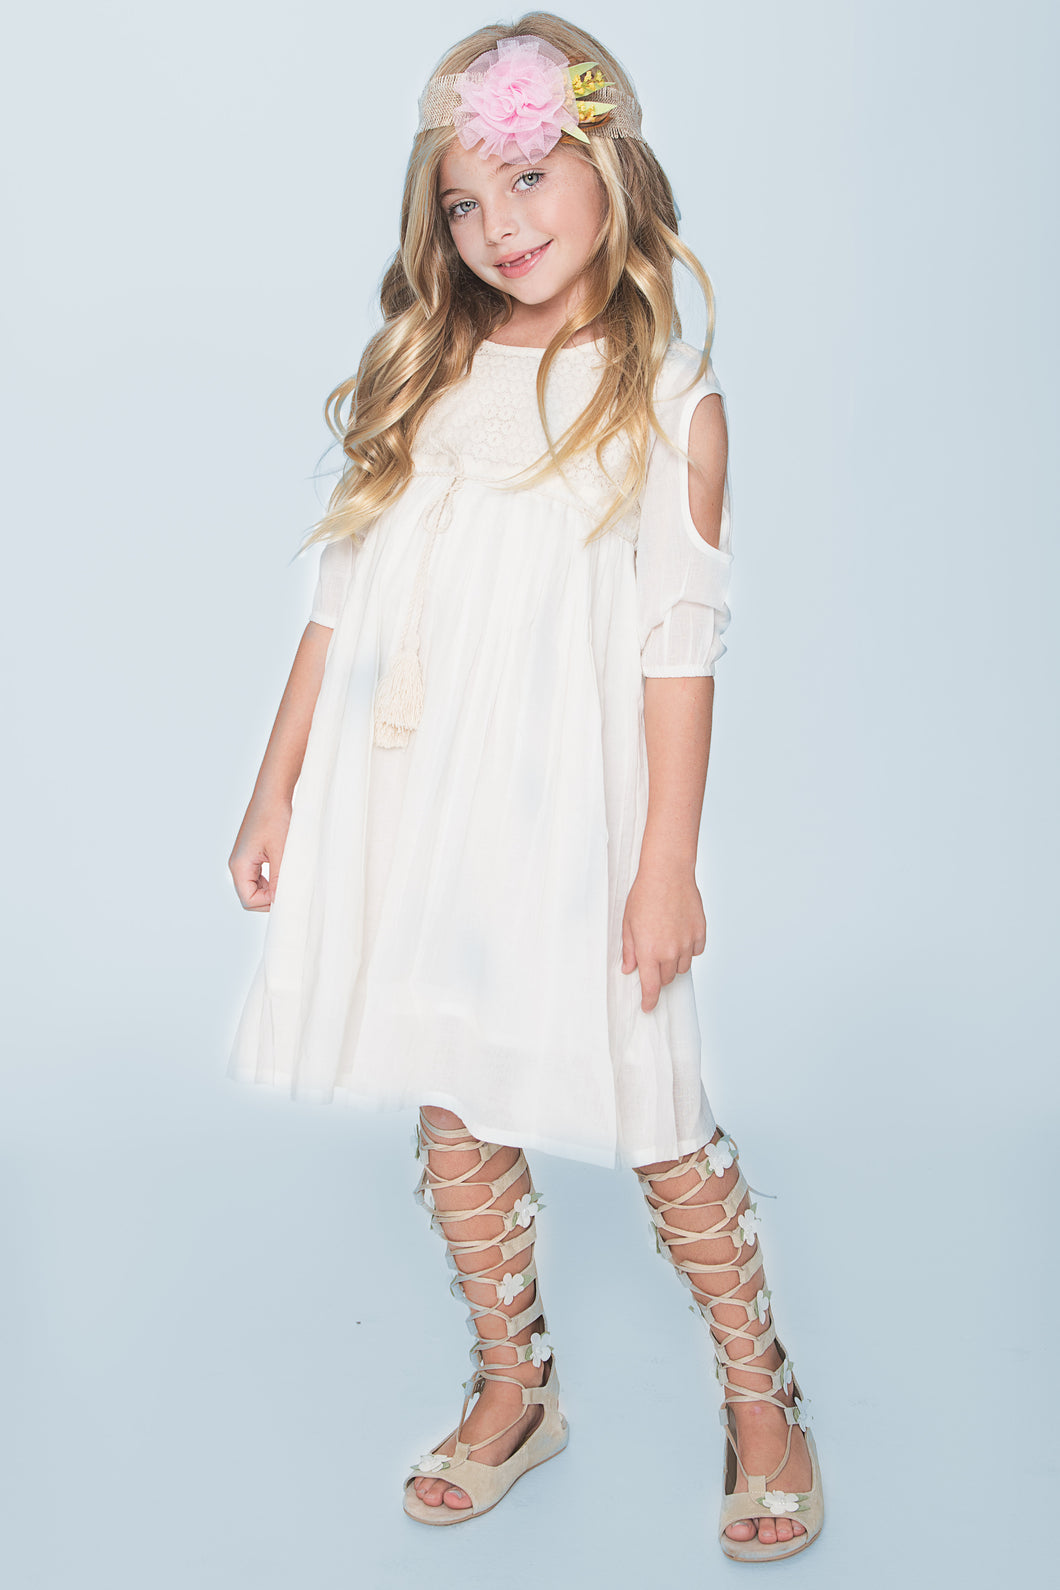 Off-White Lace Detail Cold Shoulder Dress - Kids Wholesale Boutique Clothing, Dress - Girls Dresses, Yo Baby Wholesale - Yo Baby